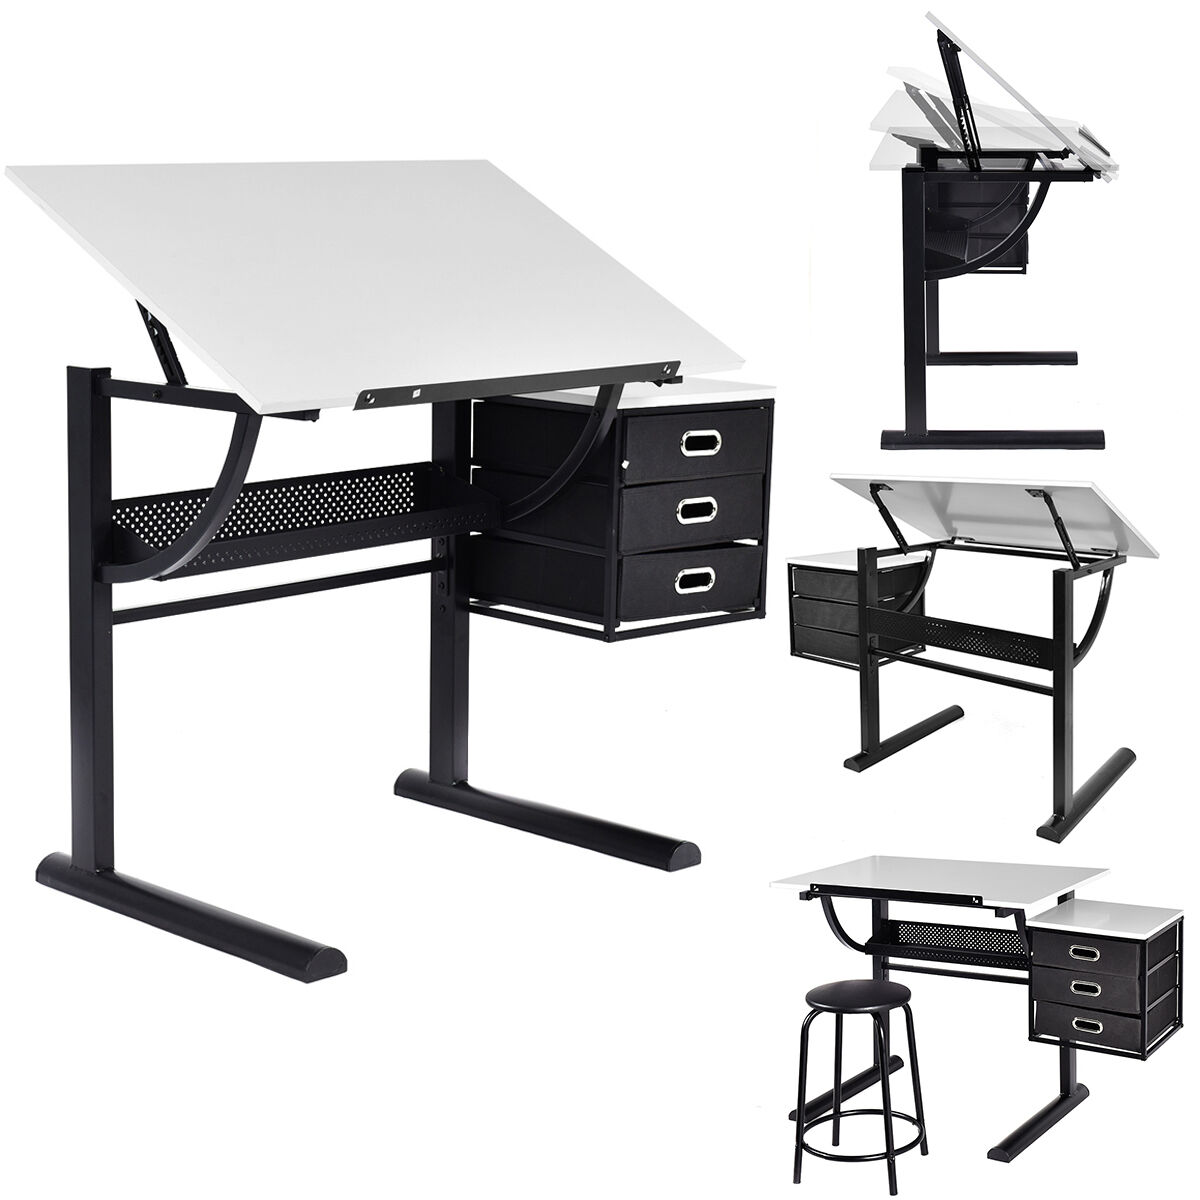 Drafting Table Art and Craft Drawing Desk Art Hobby